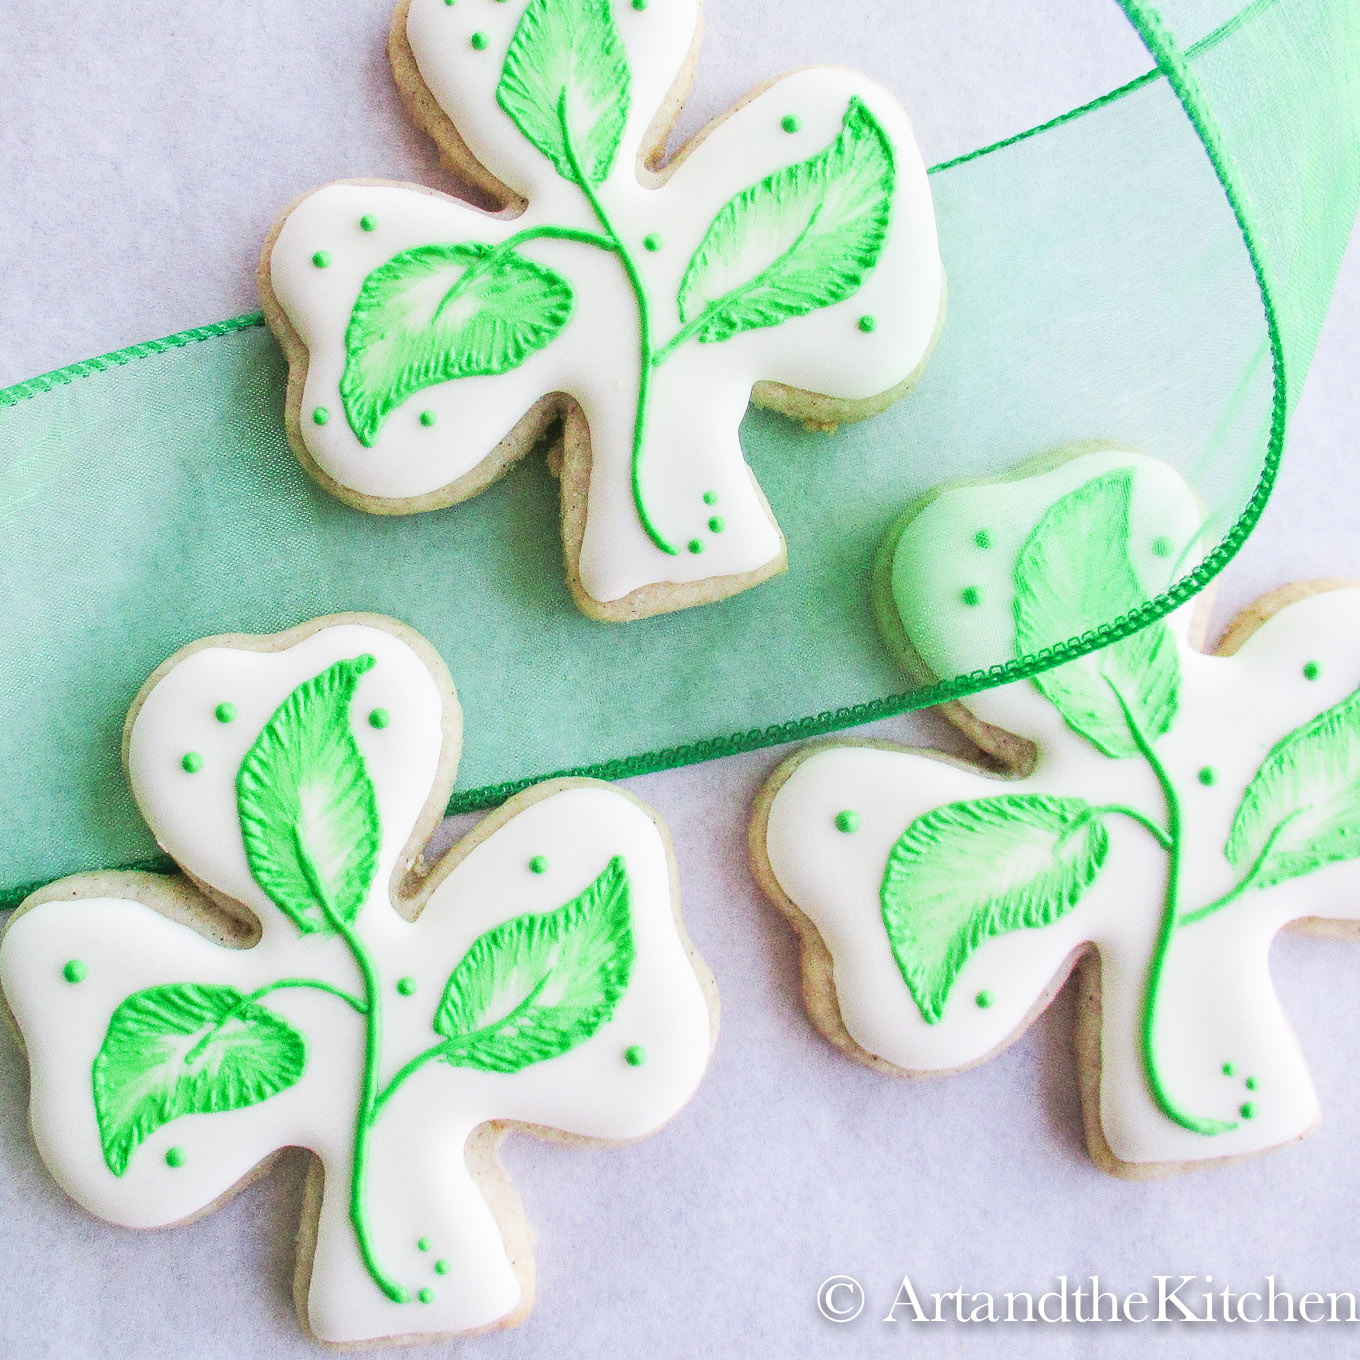 Shamrock cookies with brush embroidery technique